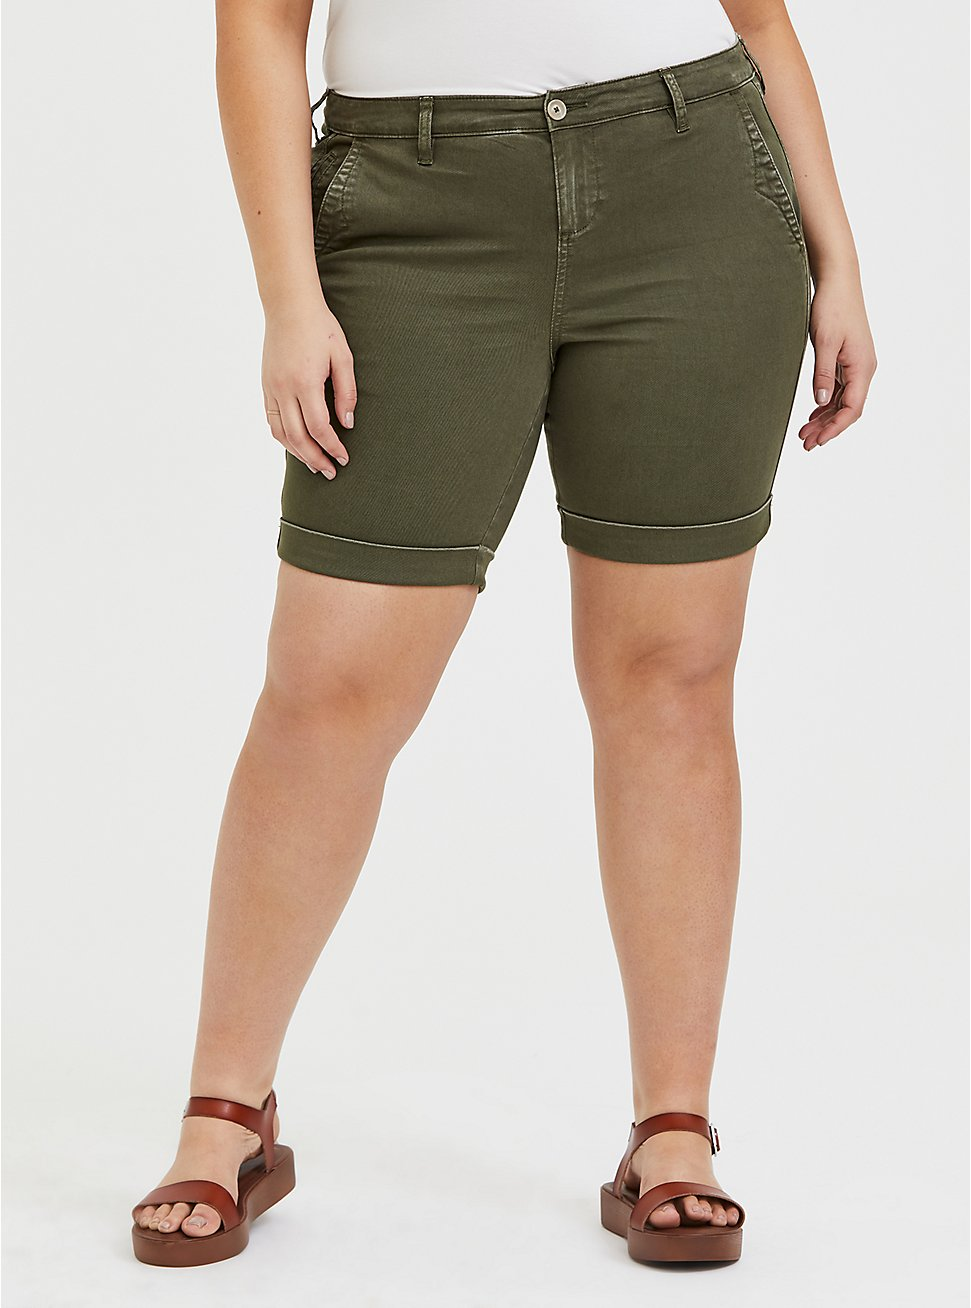 Bermuda Chino Short - Twill Olive Green, ARMY GREEN, hi-res